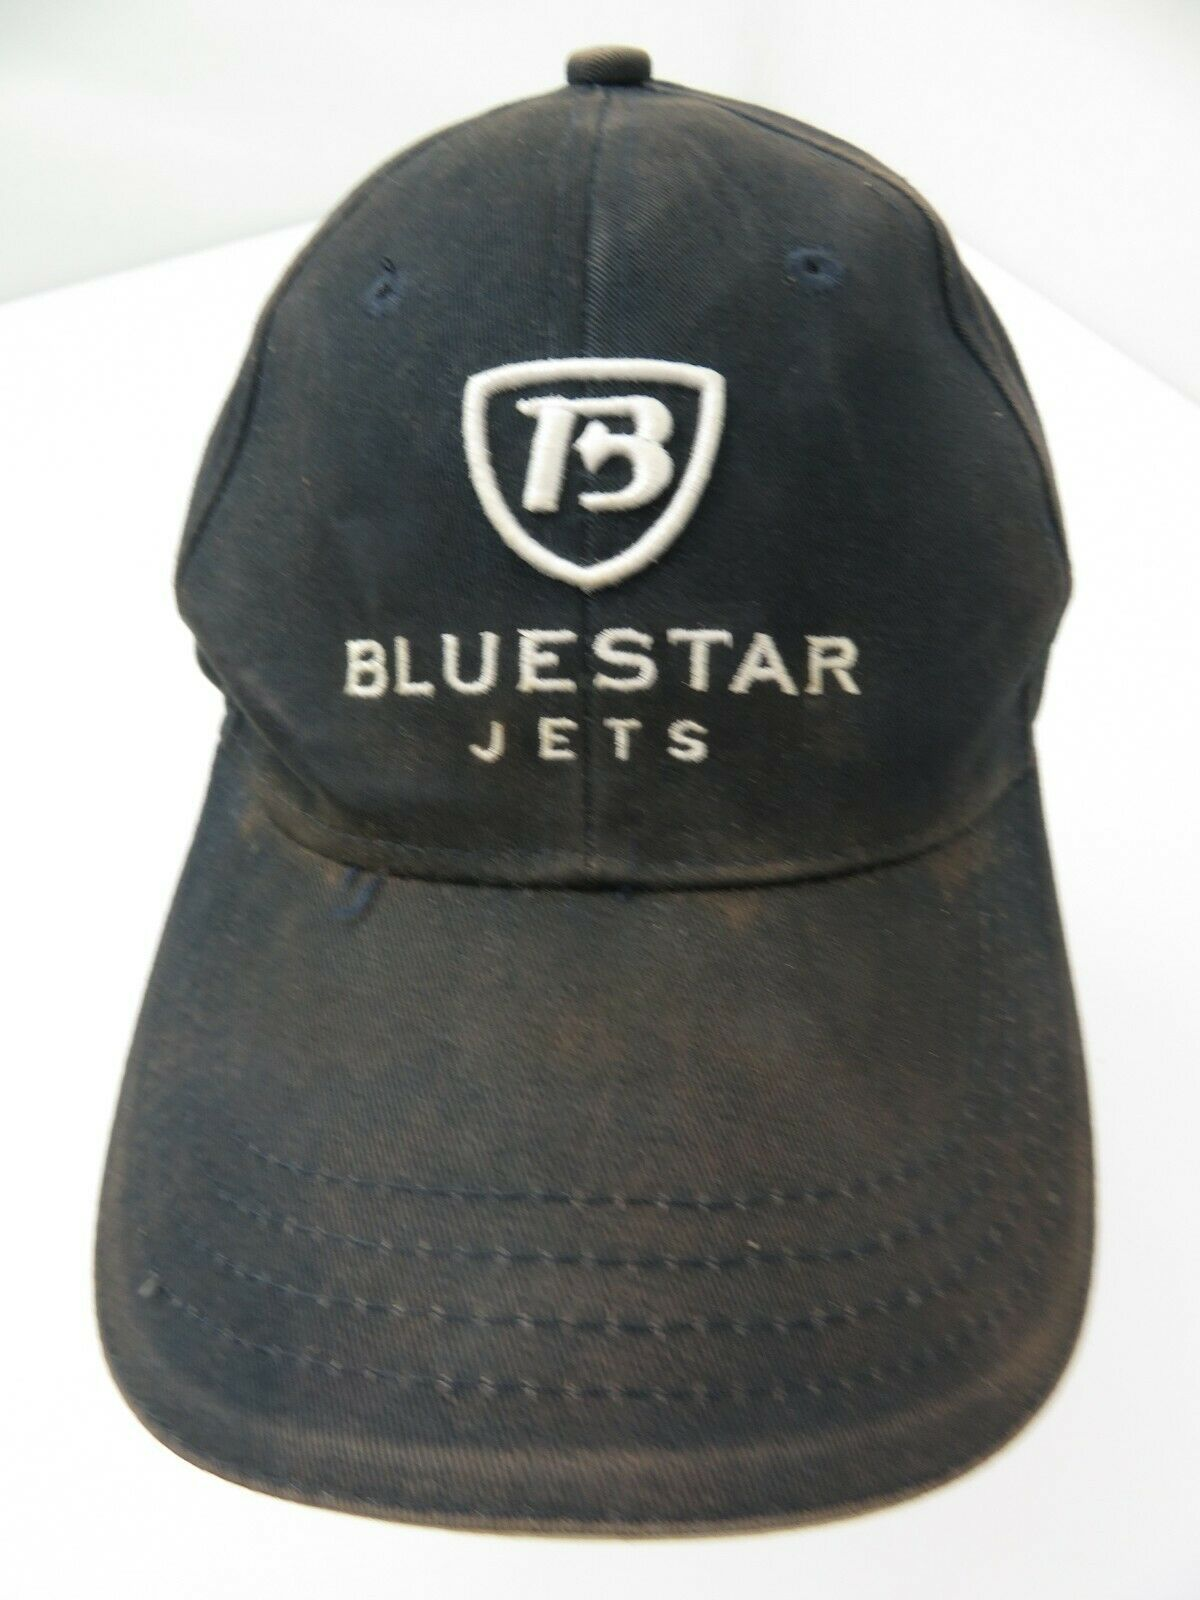 Primary image for Bluestar Jets Any Jet Any Time Any Place Adjustable Adult Cap Hat